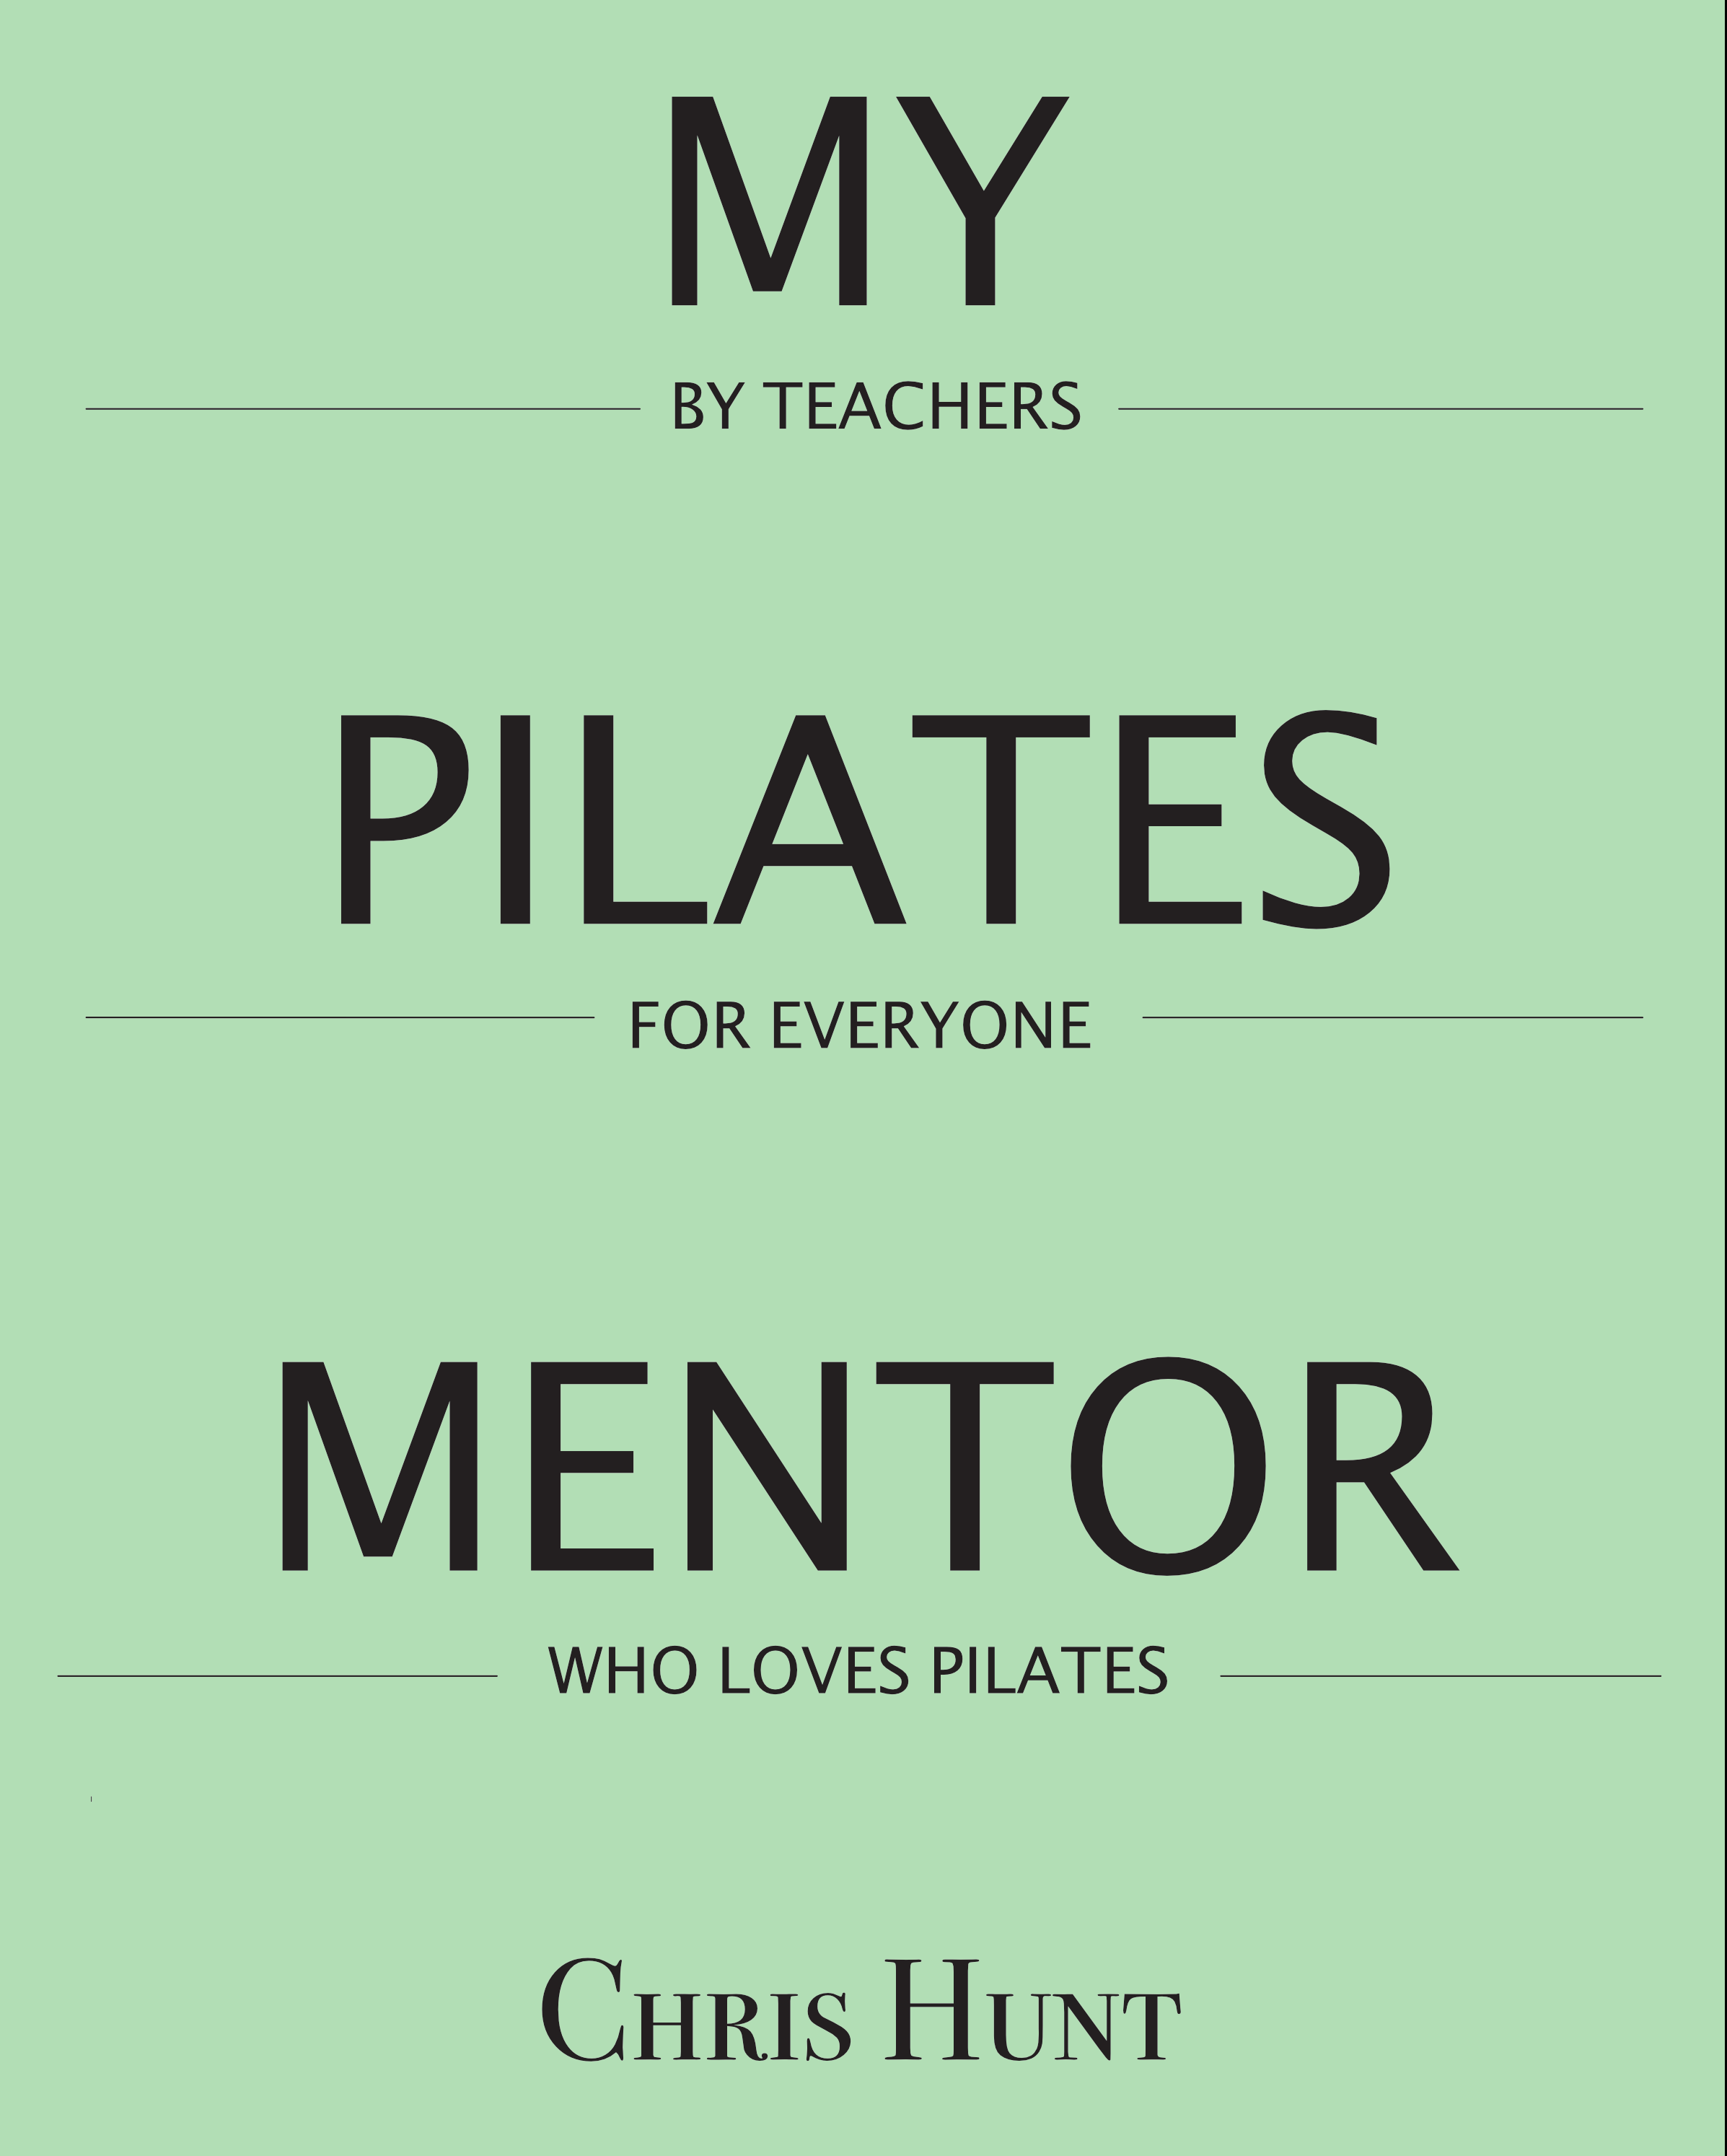 My Pilates Mentor. A book by teachers for everyone